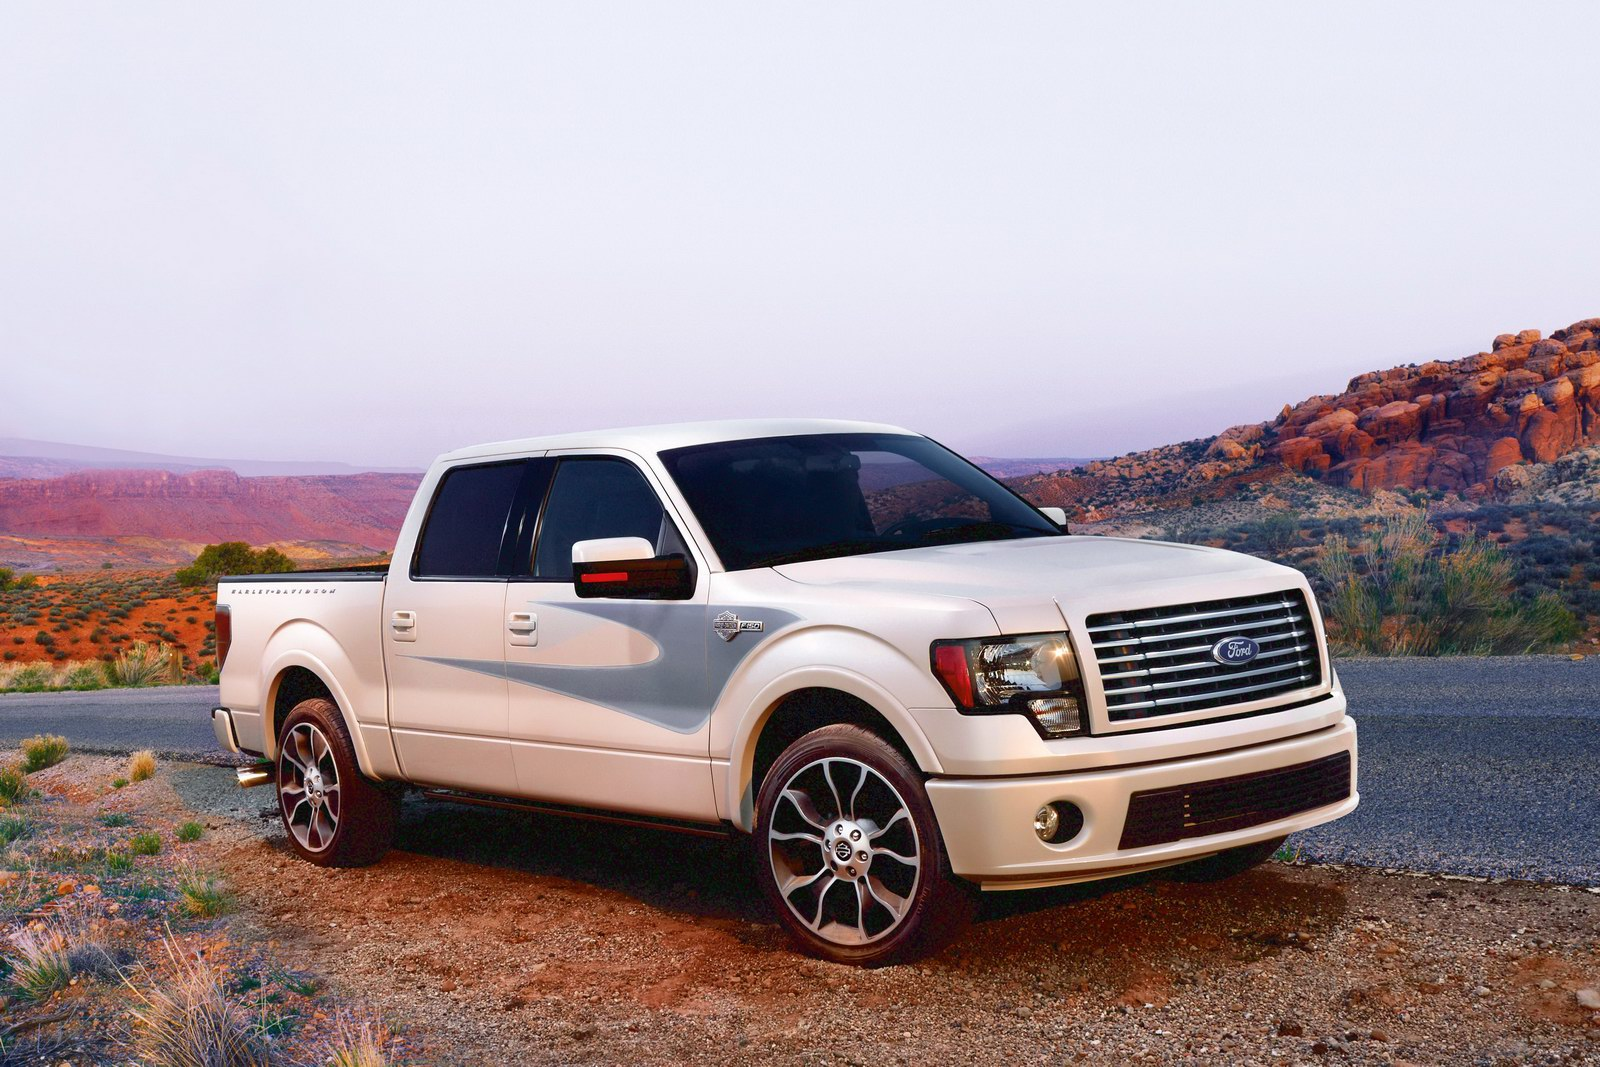 Ford F-150 14 Car Background Wallpaper